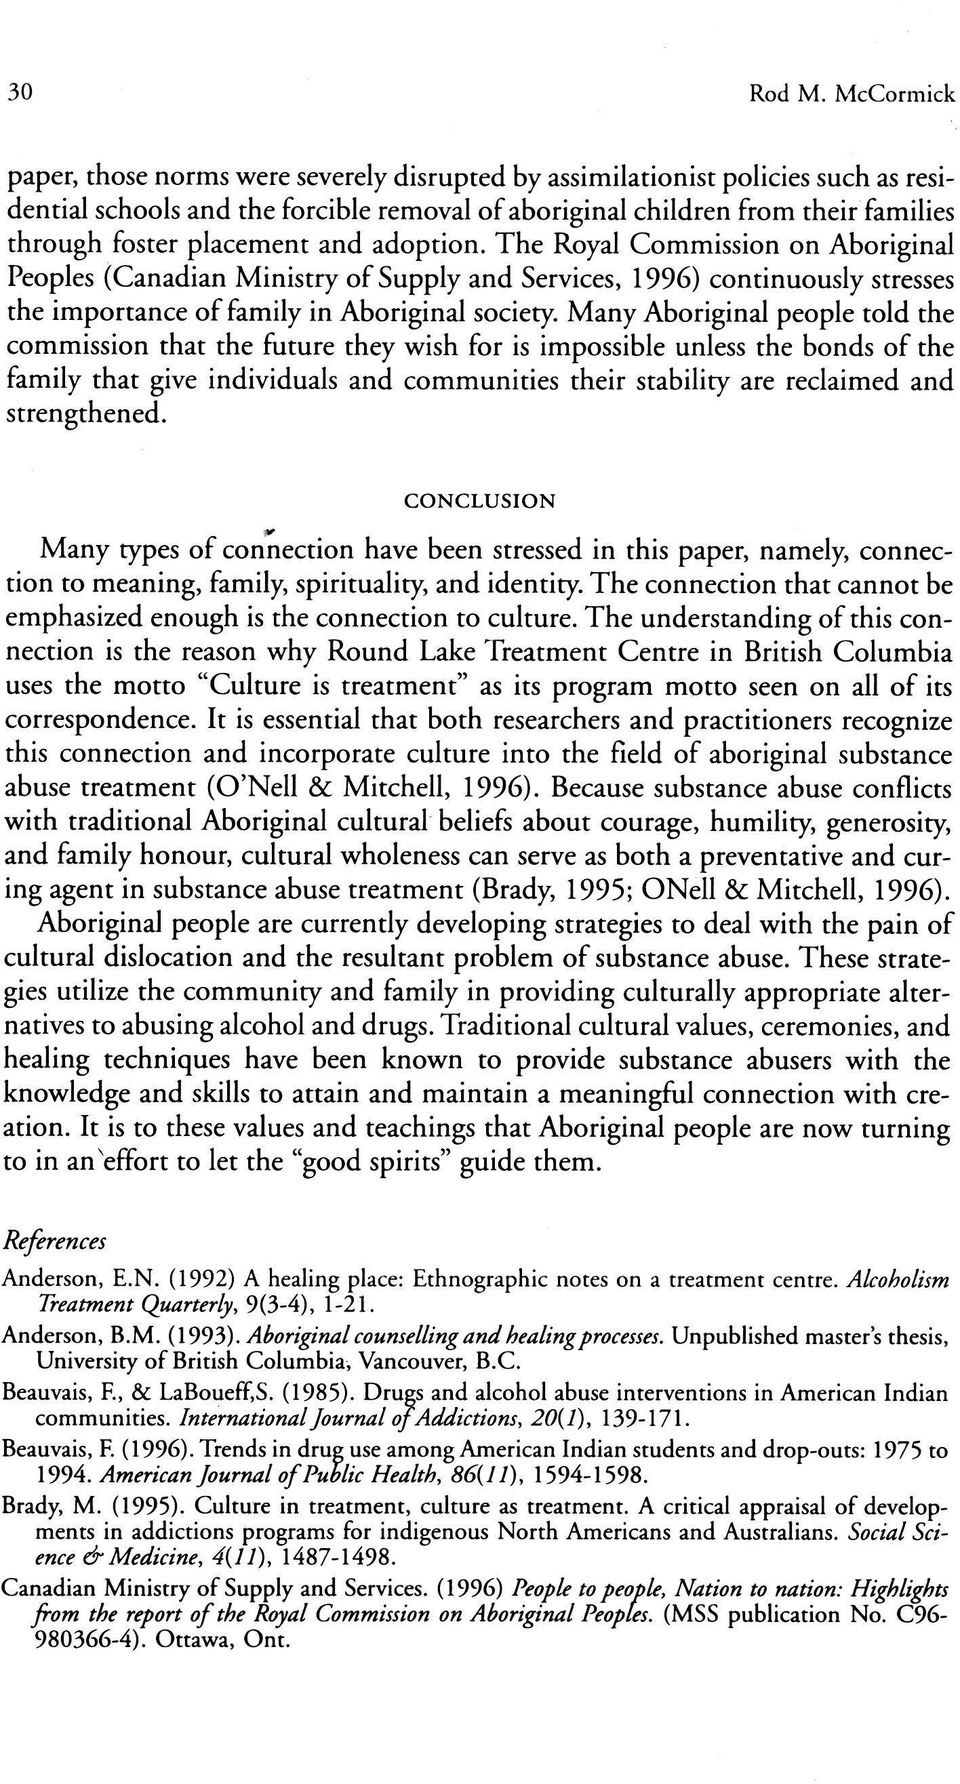 placement and adoption. The Royal Commission on Aboriginal Peoples (Canadian Ministry of Supply and Services, 1996) continuously stresses the importance of family in Aboriginal society.